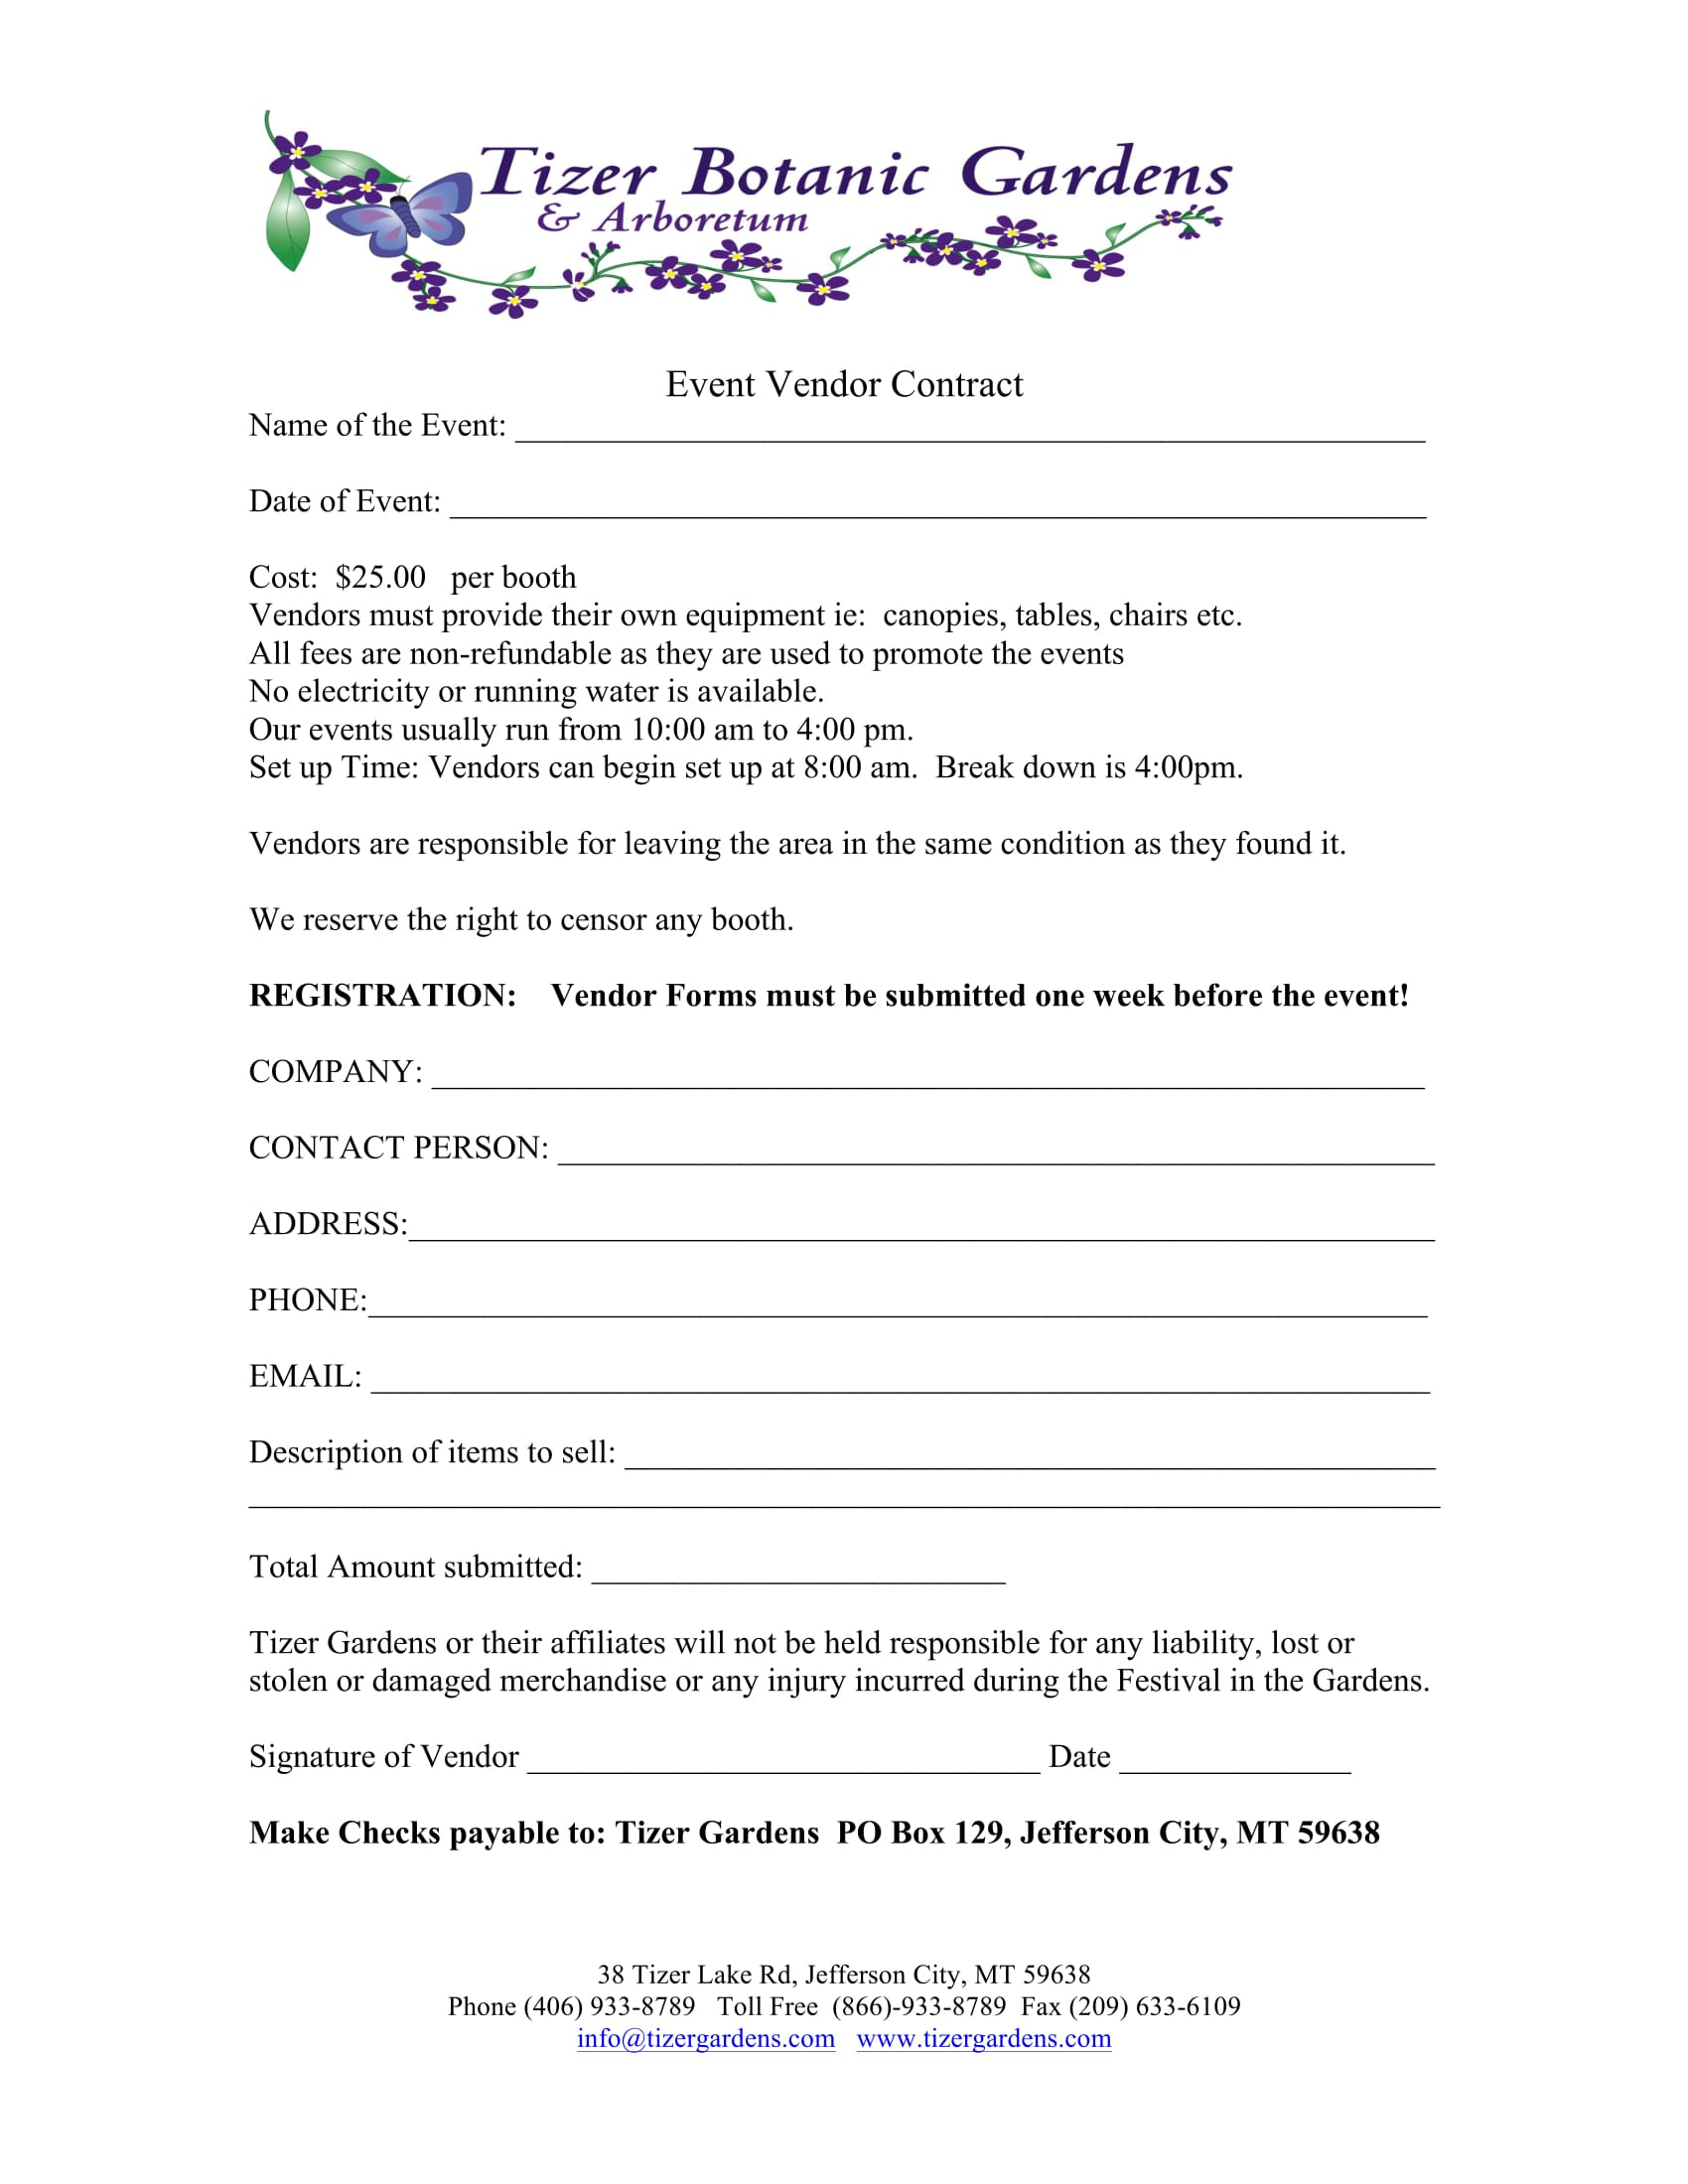 Vendor Form For An Event Demirediffusion